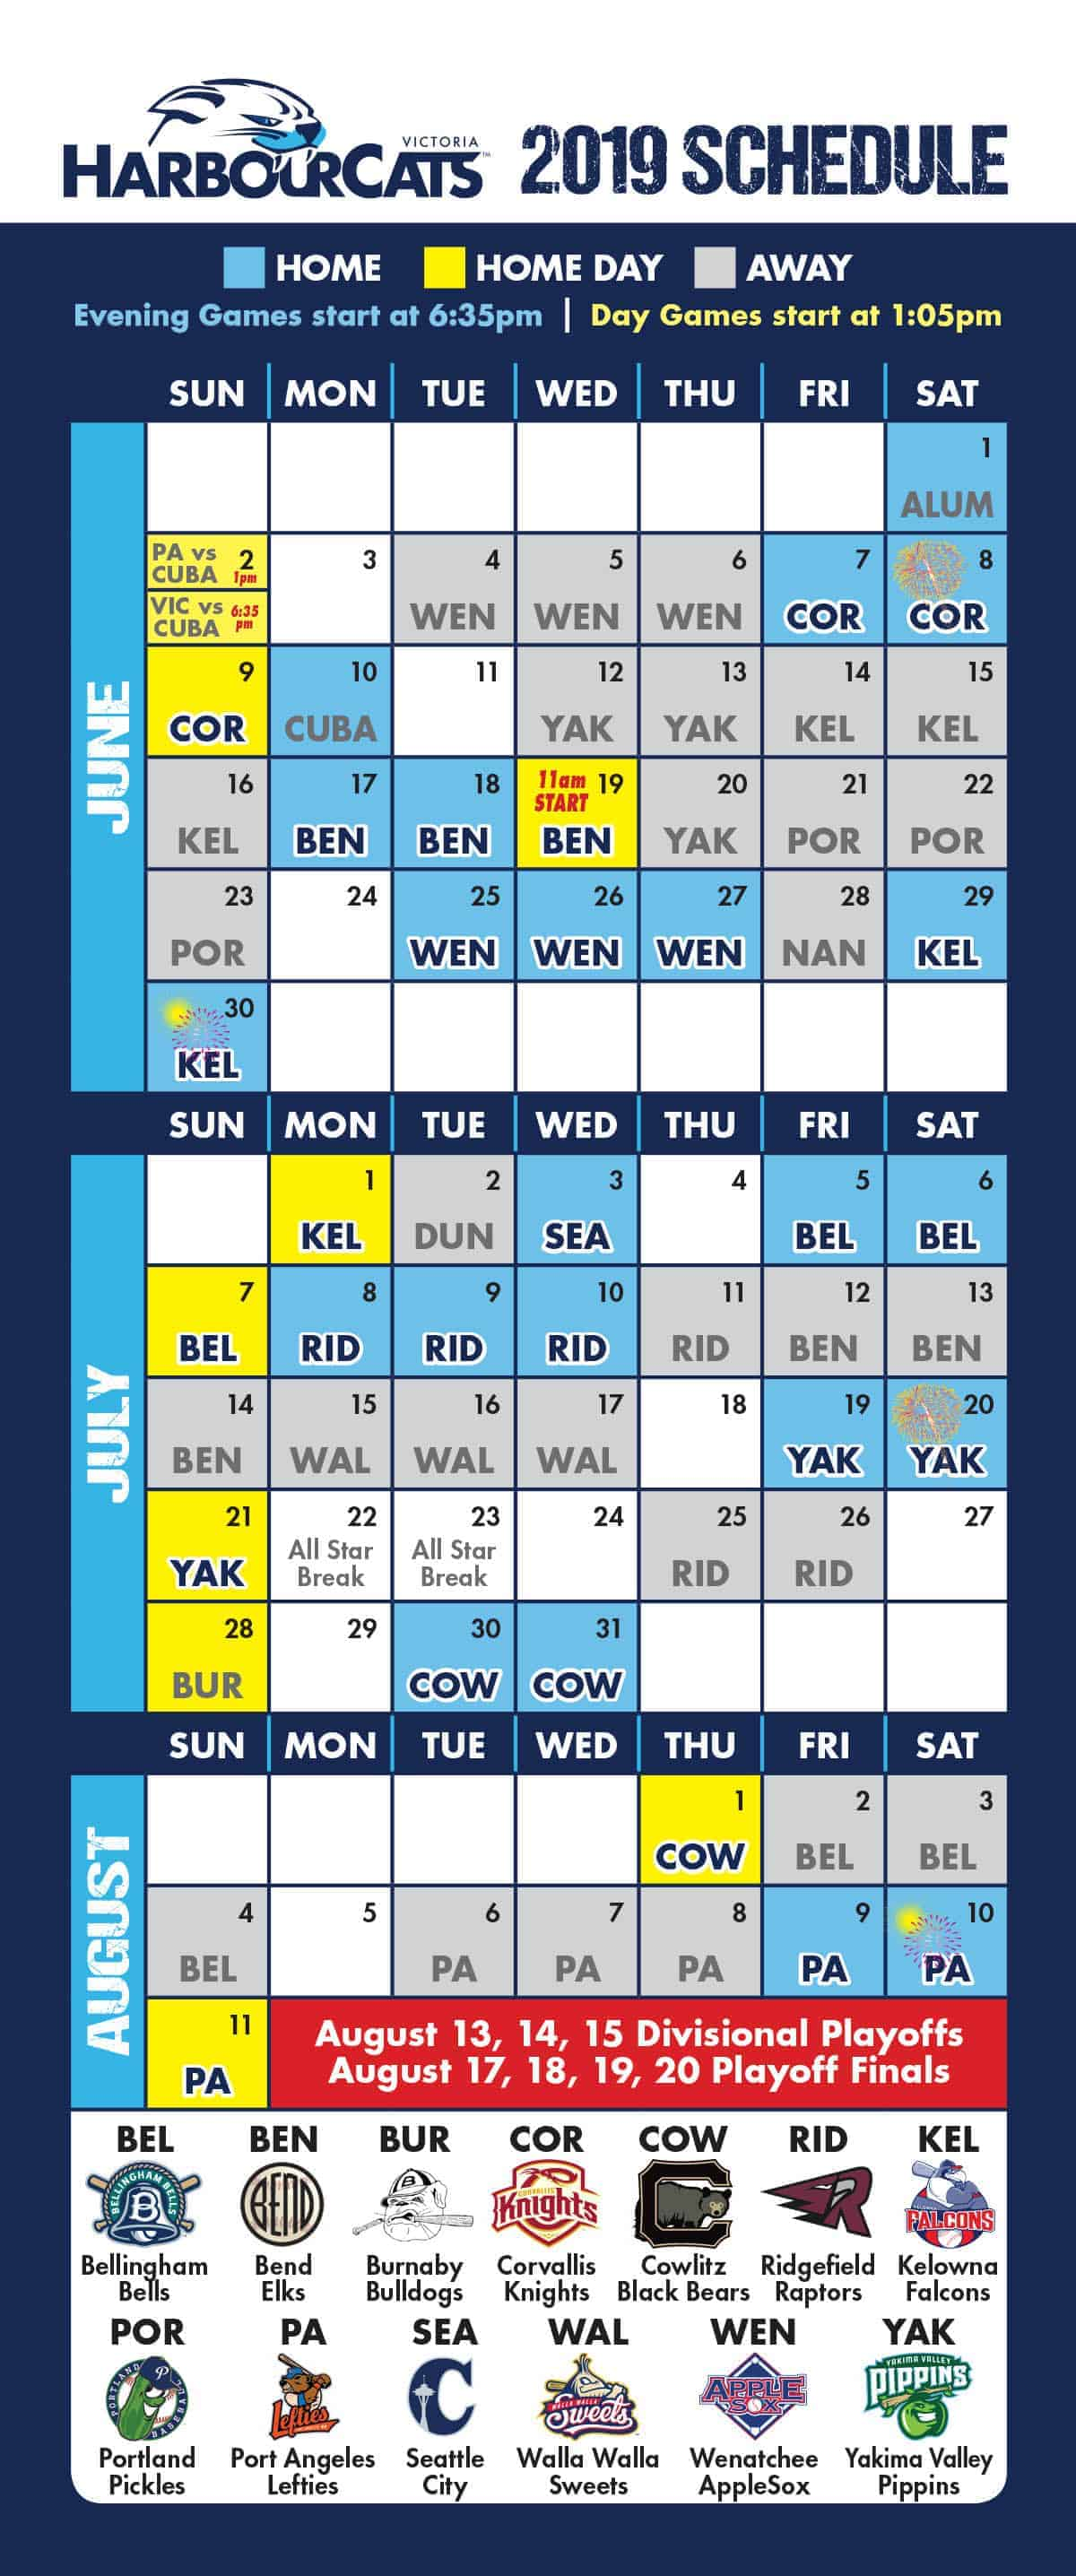 2018 Schedule - Full Calendar View